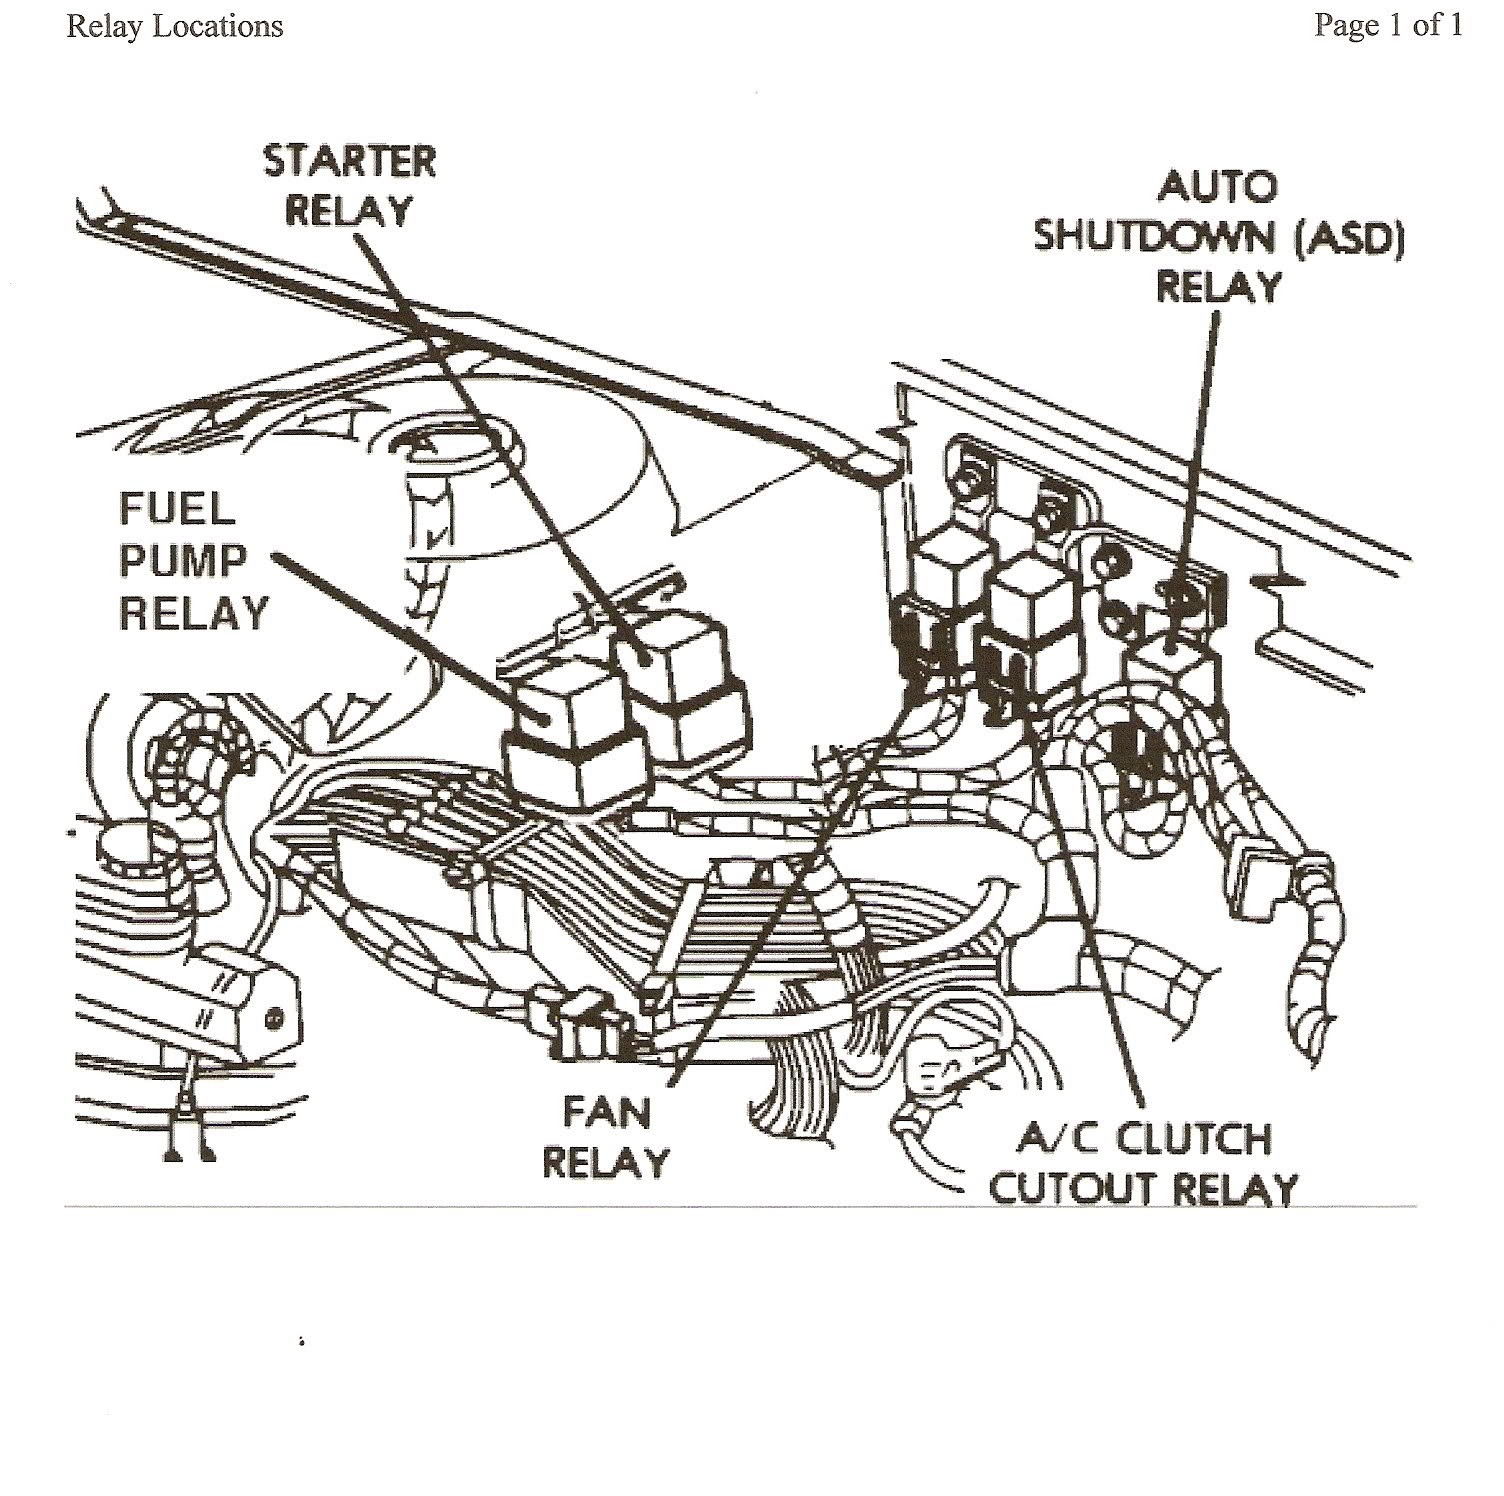 07 300 Chrysler Starter Wiring Diagram Chrysler 5.7 Hemi